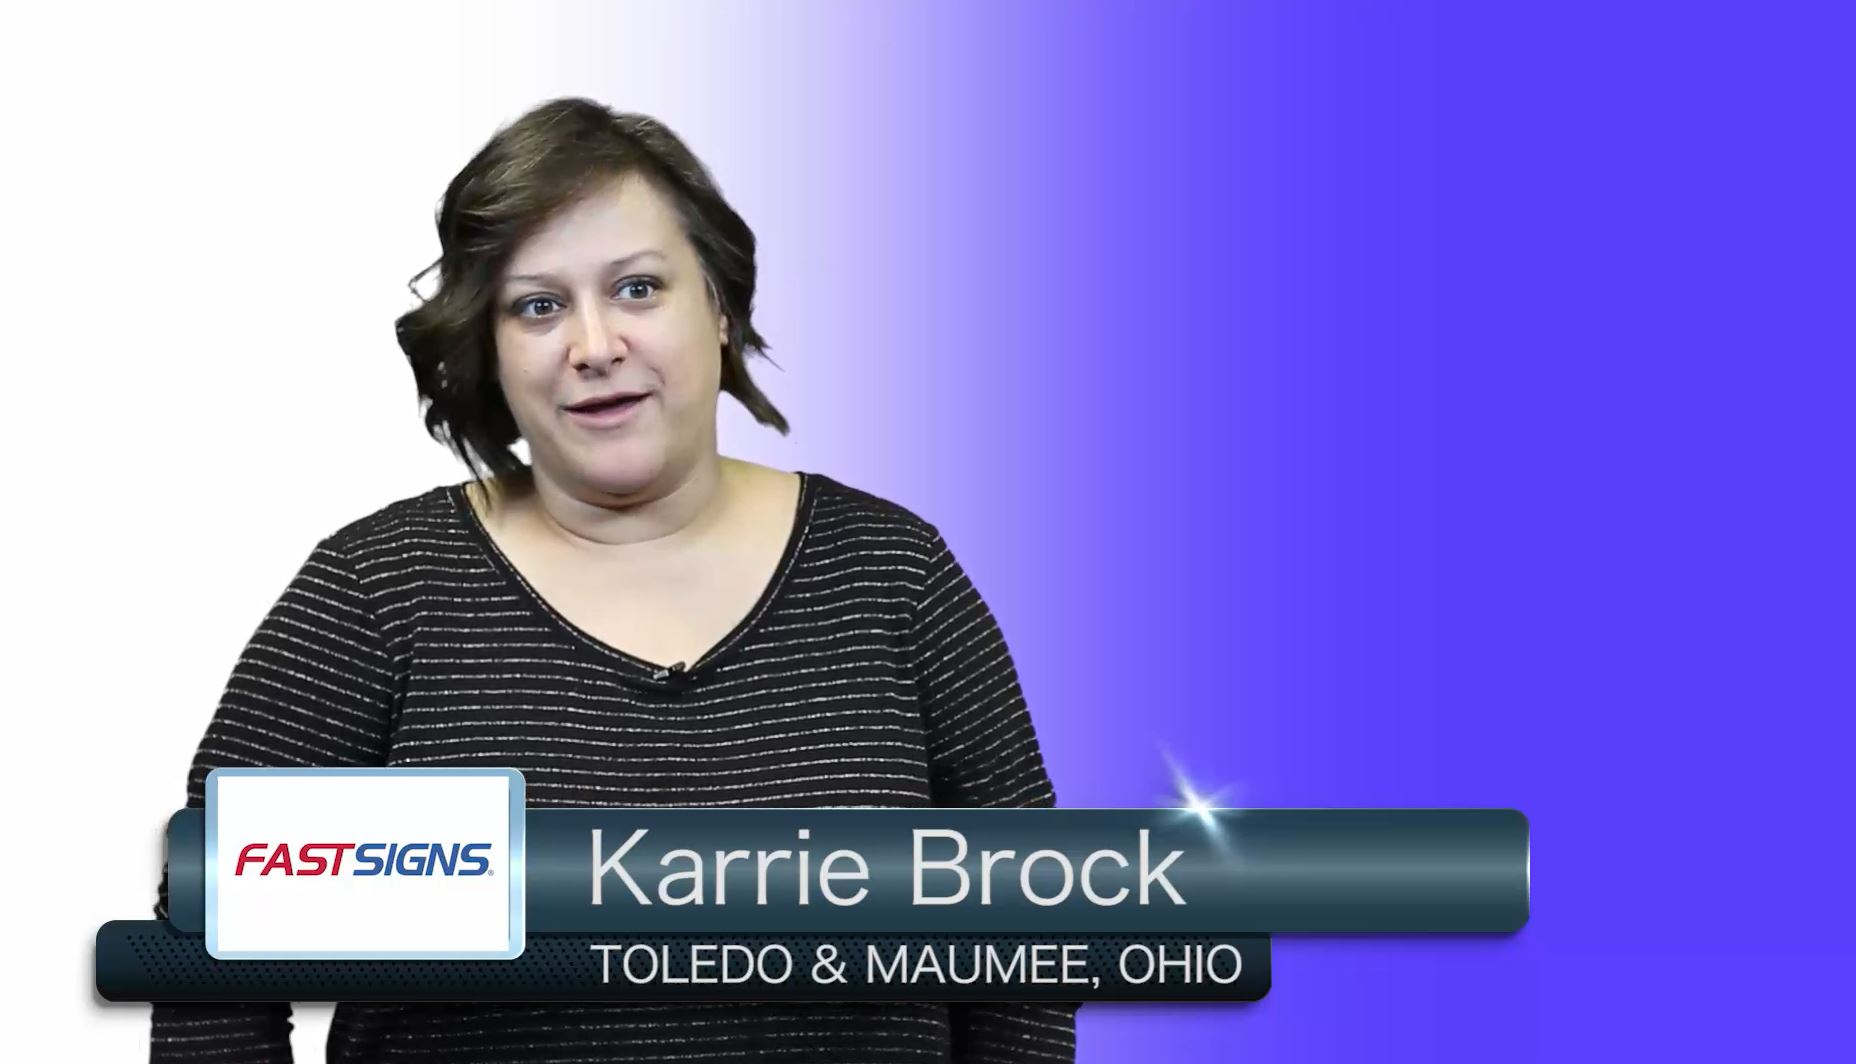 Franchise Owners - Karrie Brock